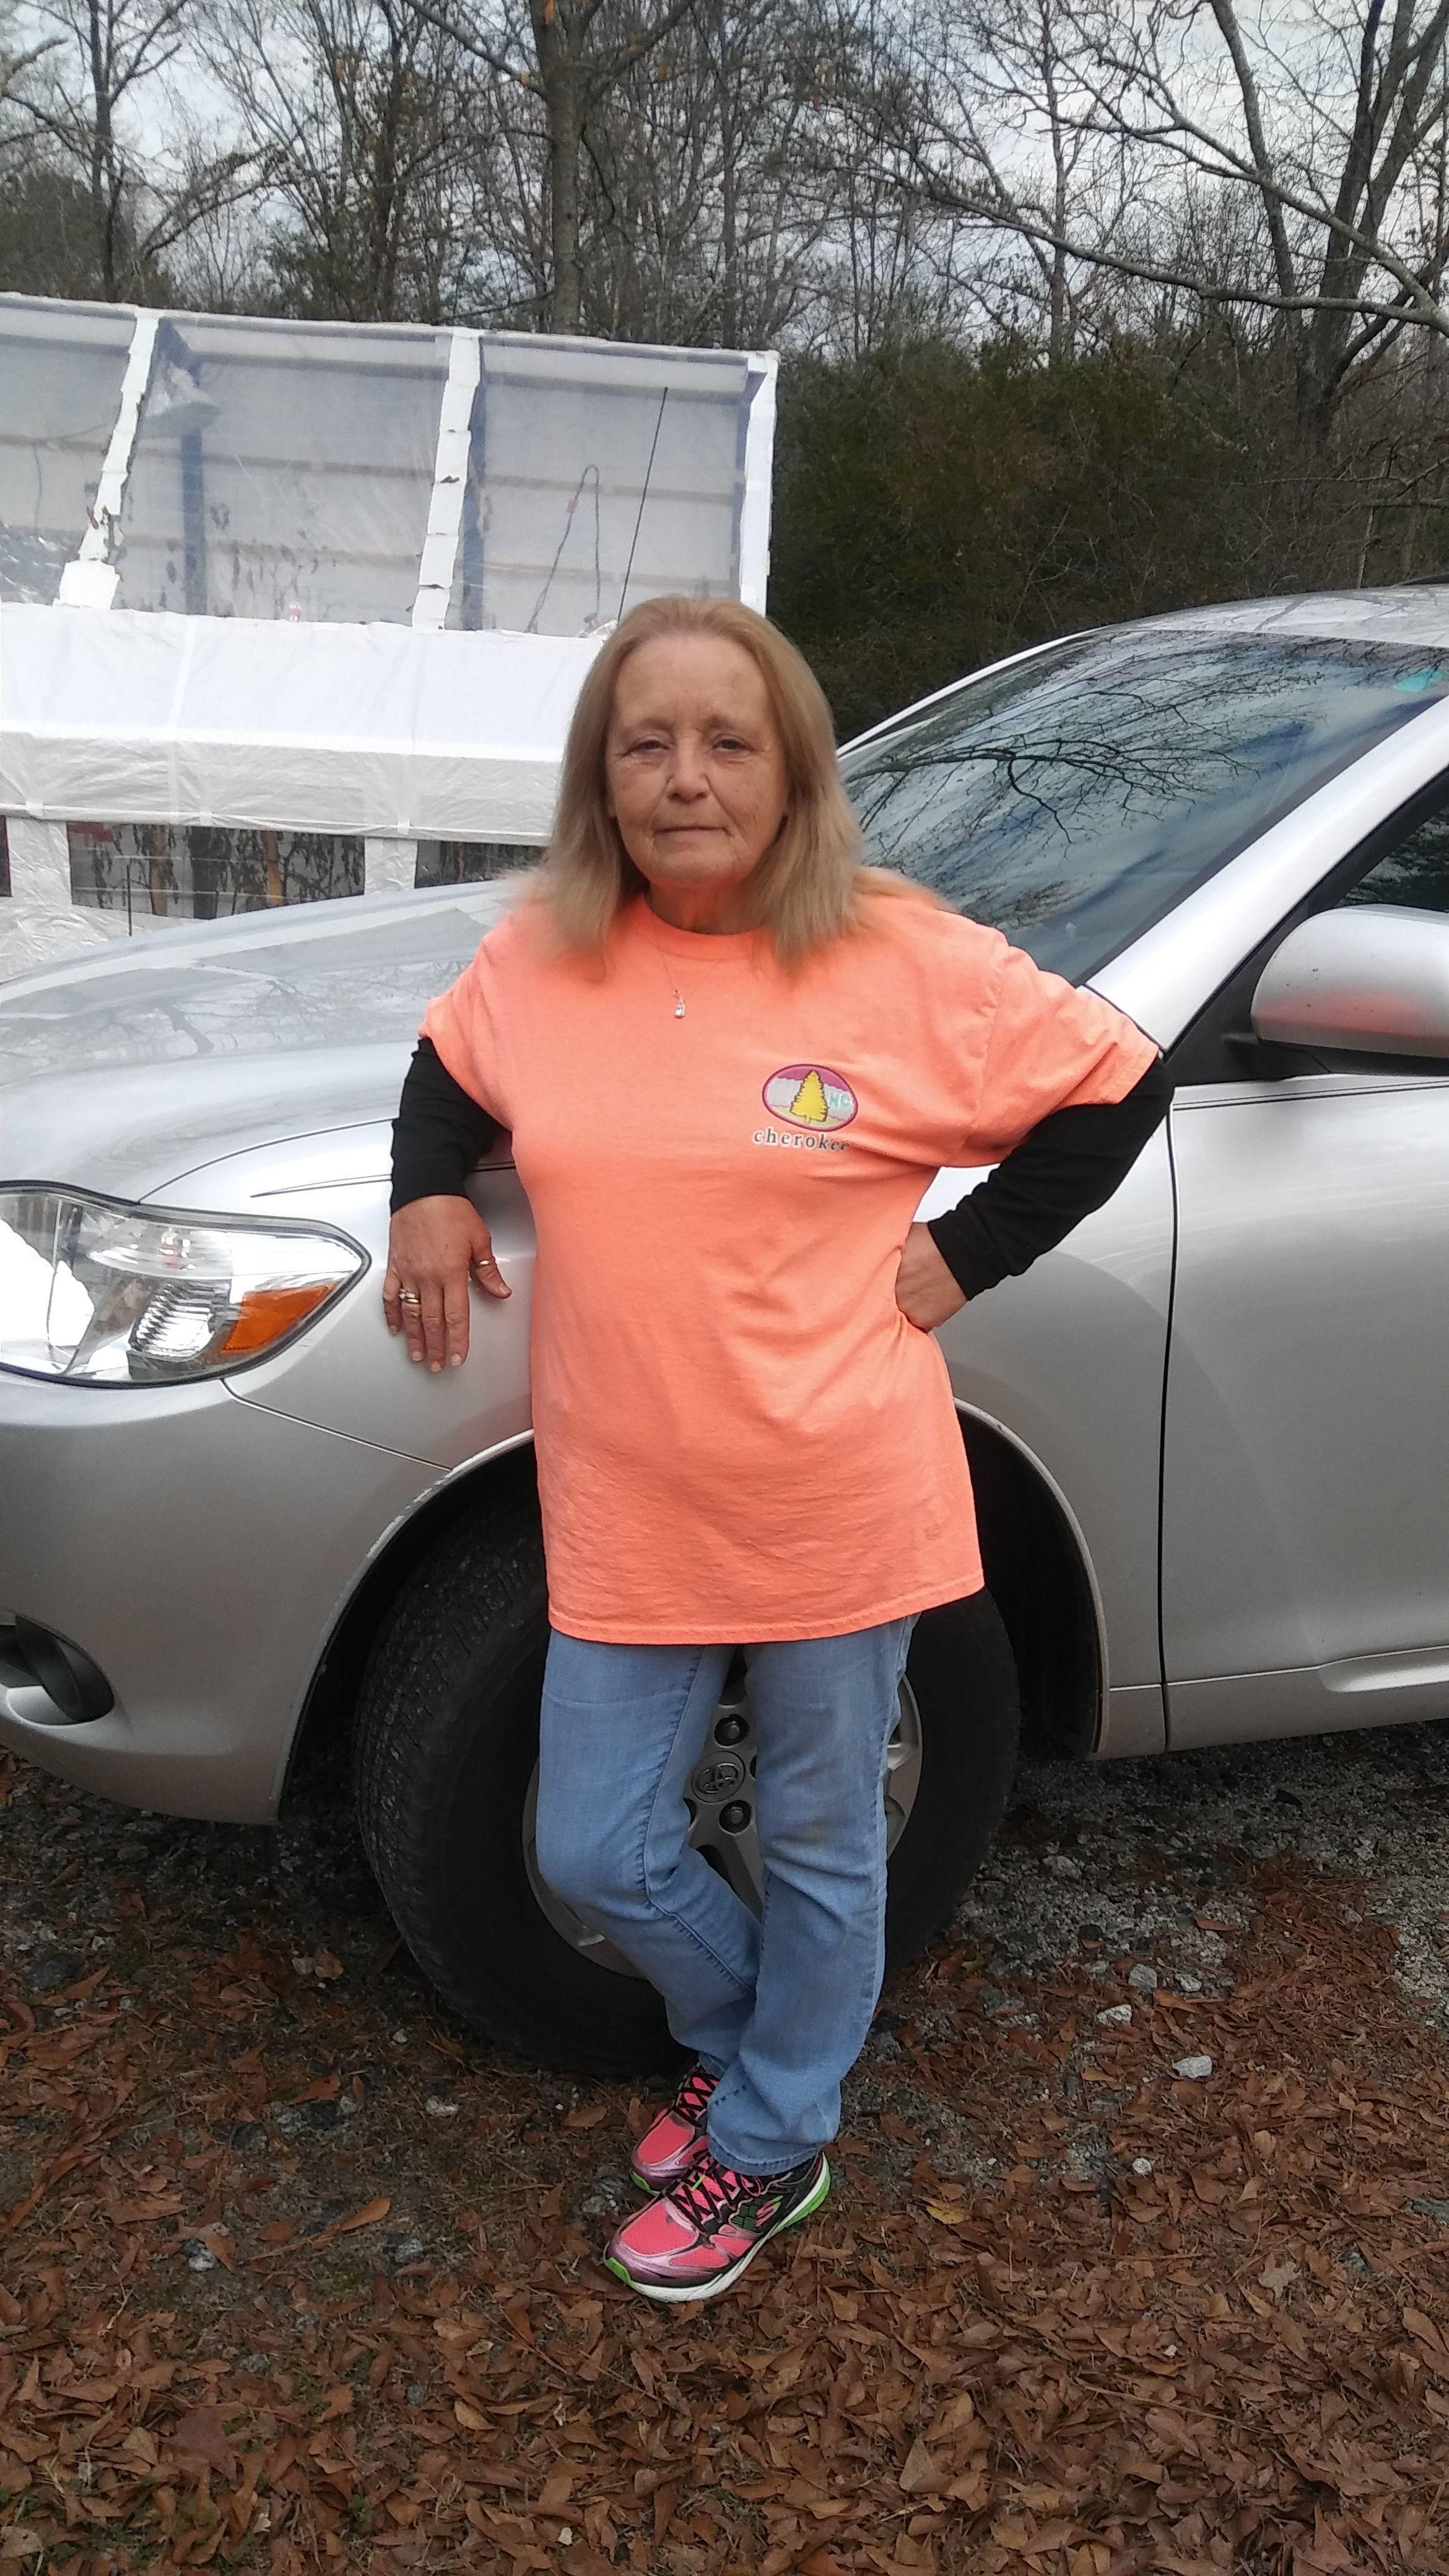 kennesaw mature singles Meet senior singles in acworth, georgia online & connect in the chat rooms dhu is a 100% free dating site for senior dating in acworth.